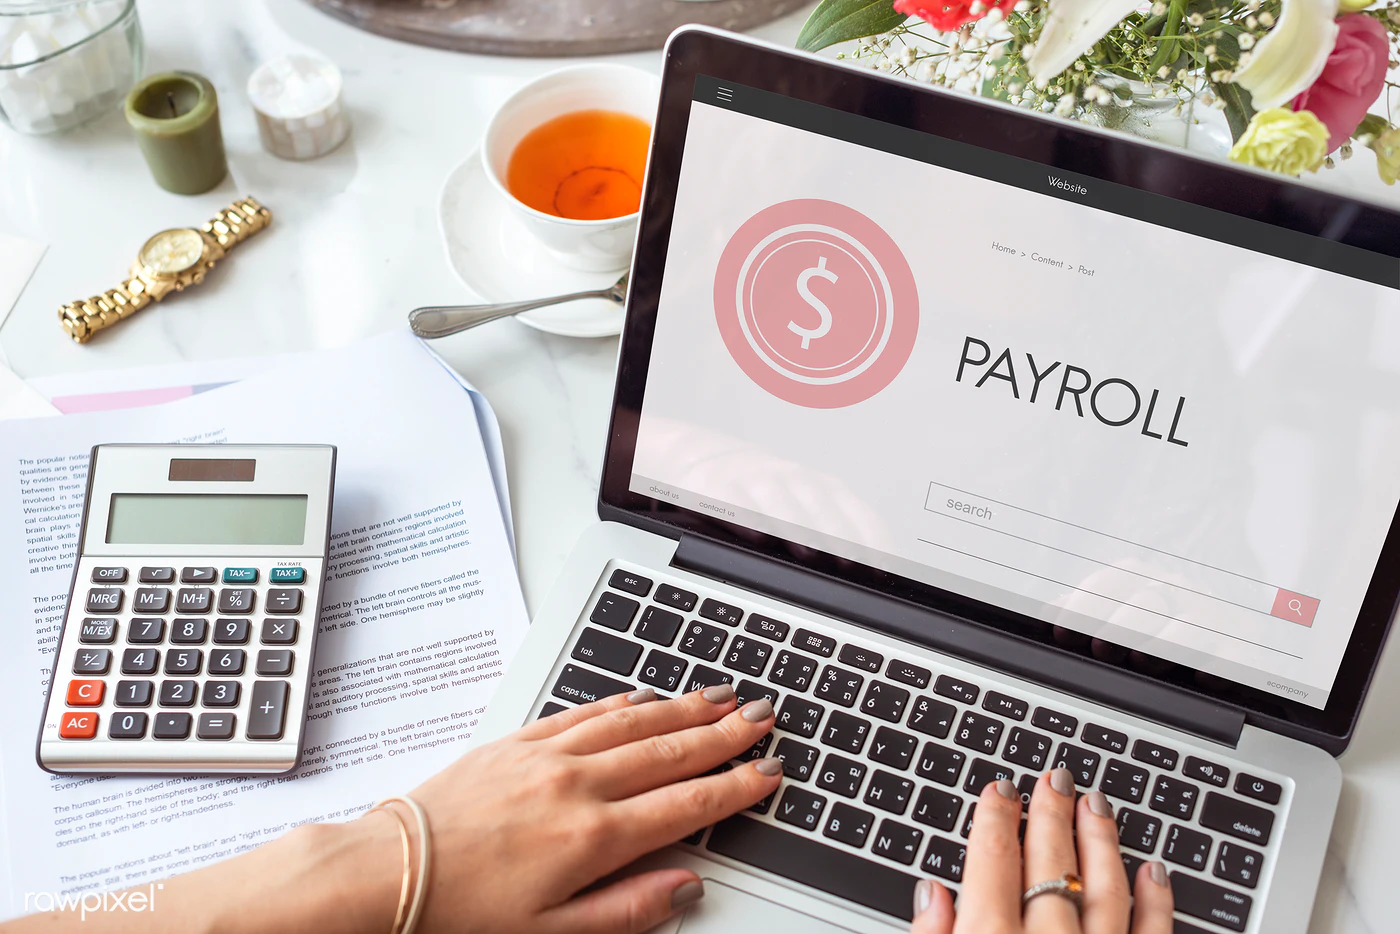 4 Payroll KPIs to Measure Business Success